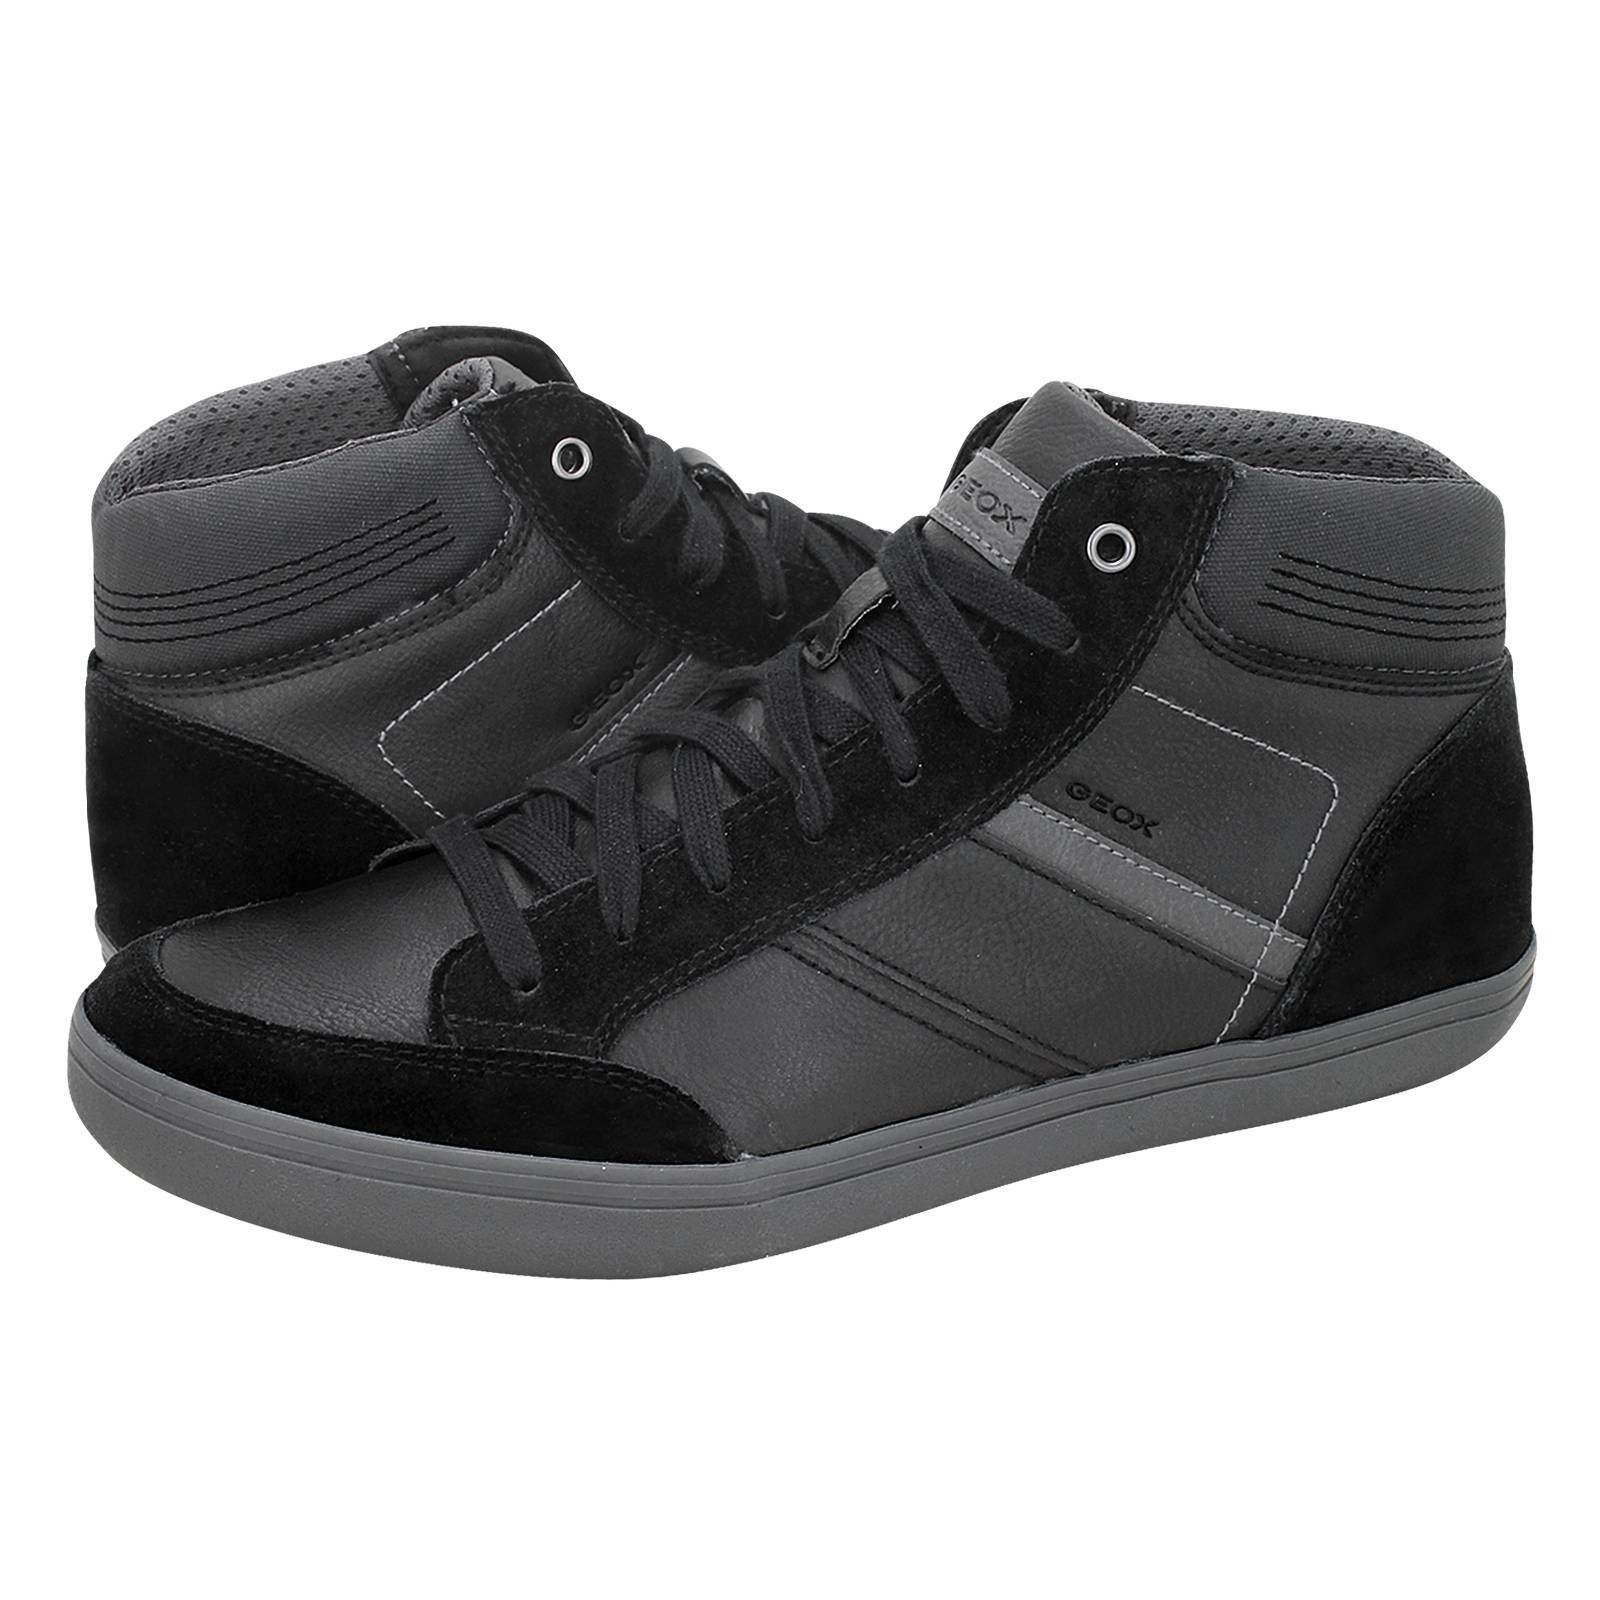 premium selection 6e0f6 42ad0 Geox Kruchowo casual low boots